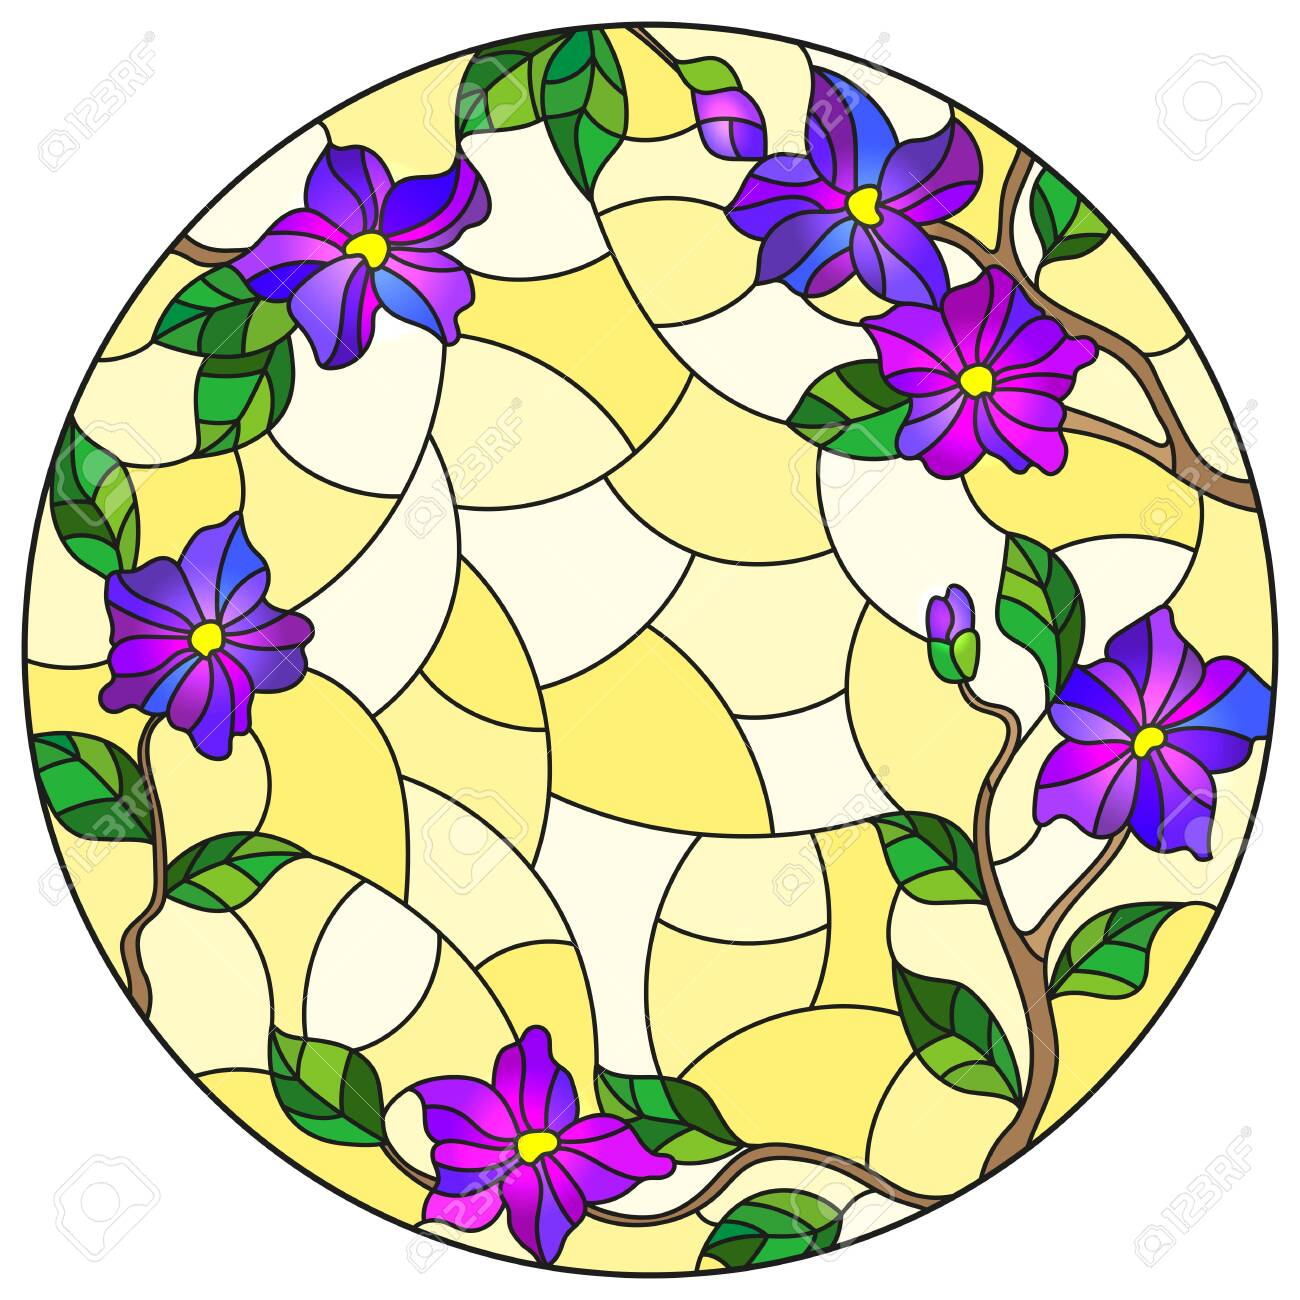 Illustration in stained glass style with floral arrangement of flowers, purple flowers and leaves on a yellow background, round image - 133856117